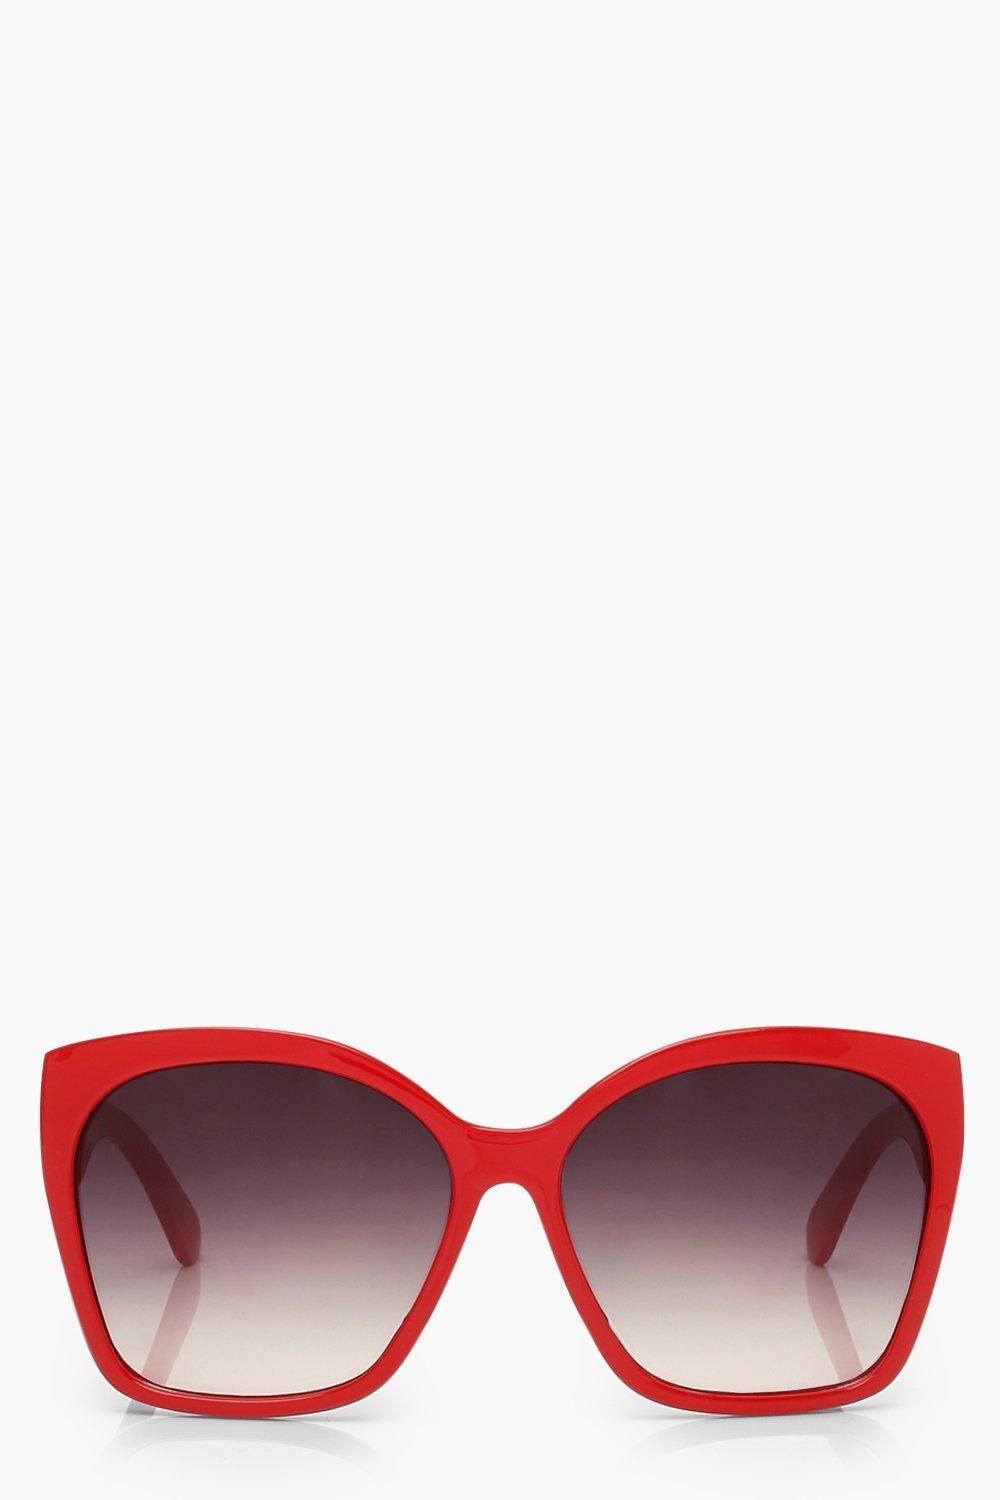 boohoo Womens Oversized Sunglasses - Red - One Size, Red